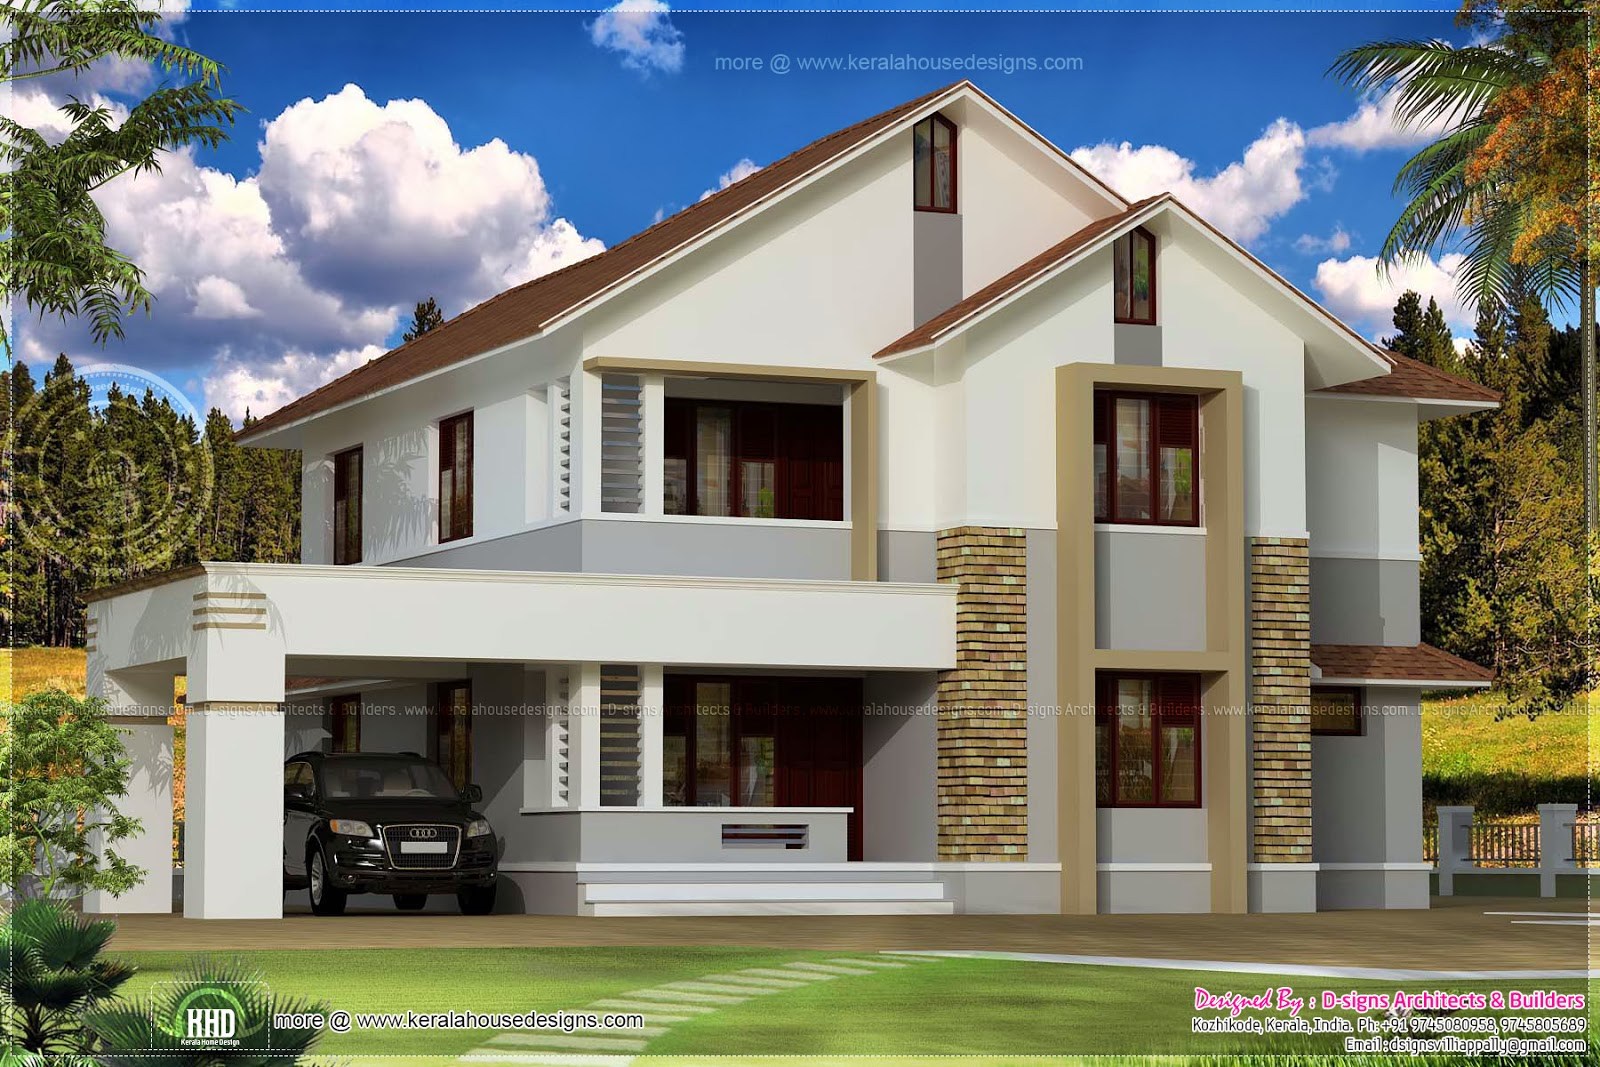 Simple sloping roof house elevation kerala home design for Minimalist house design kerala